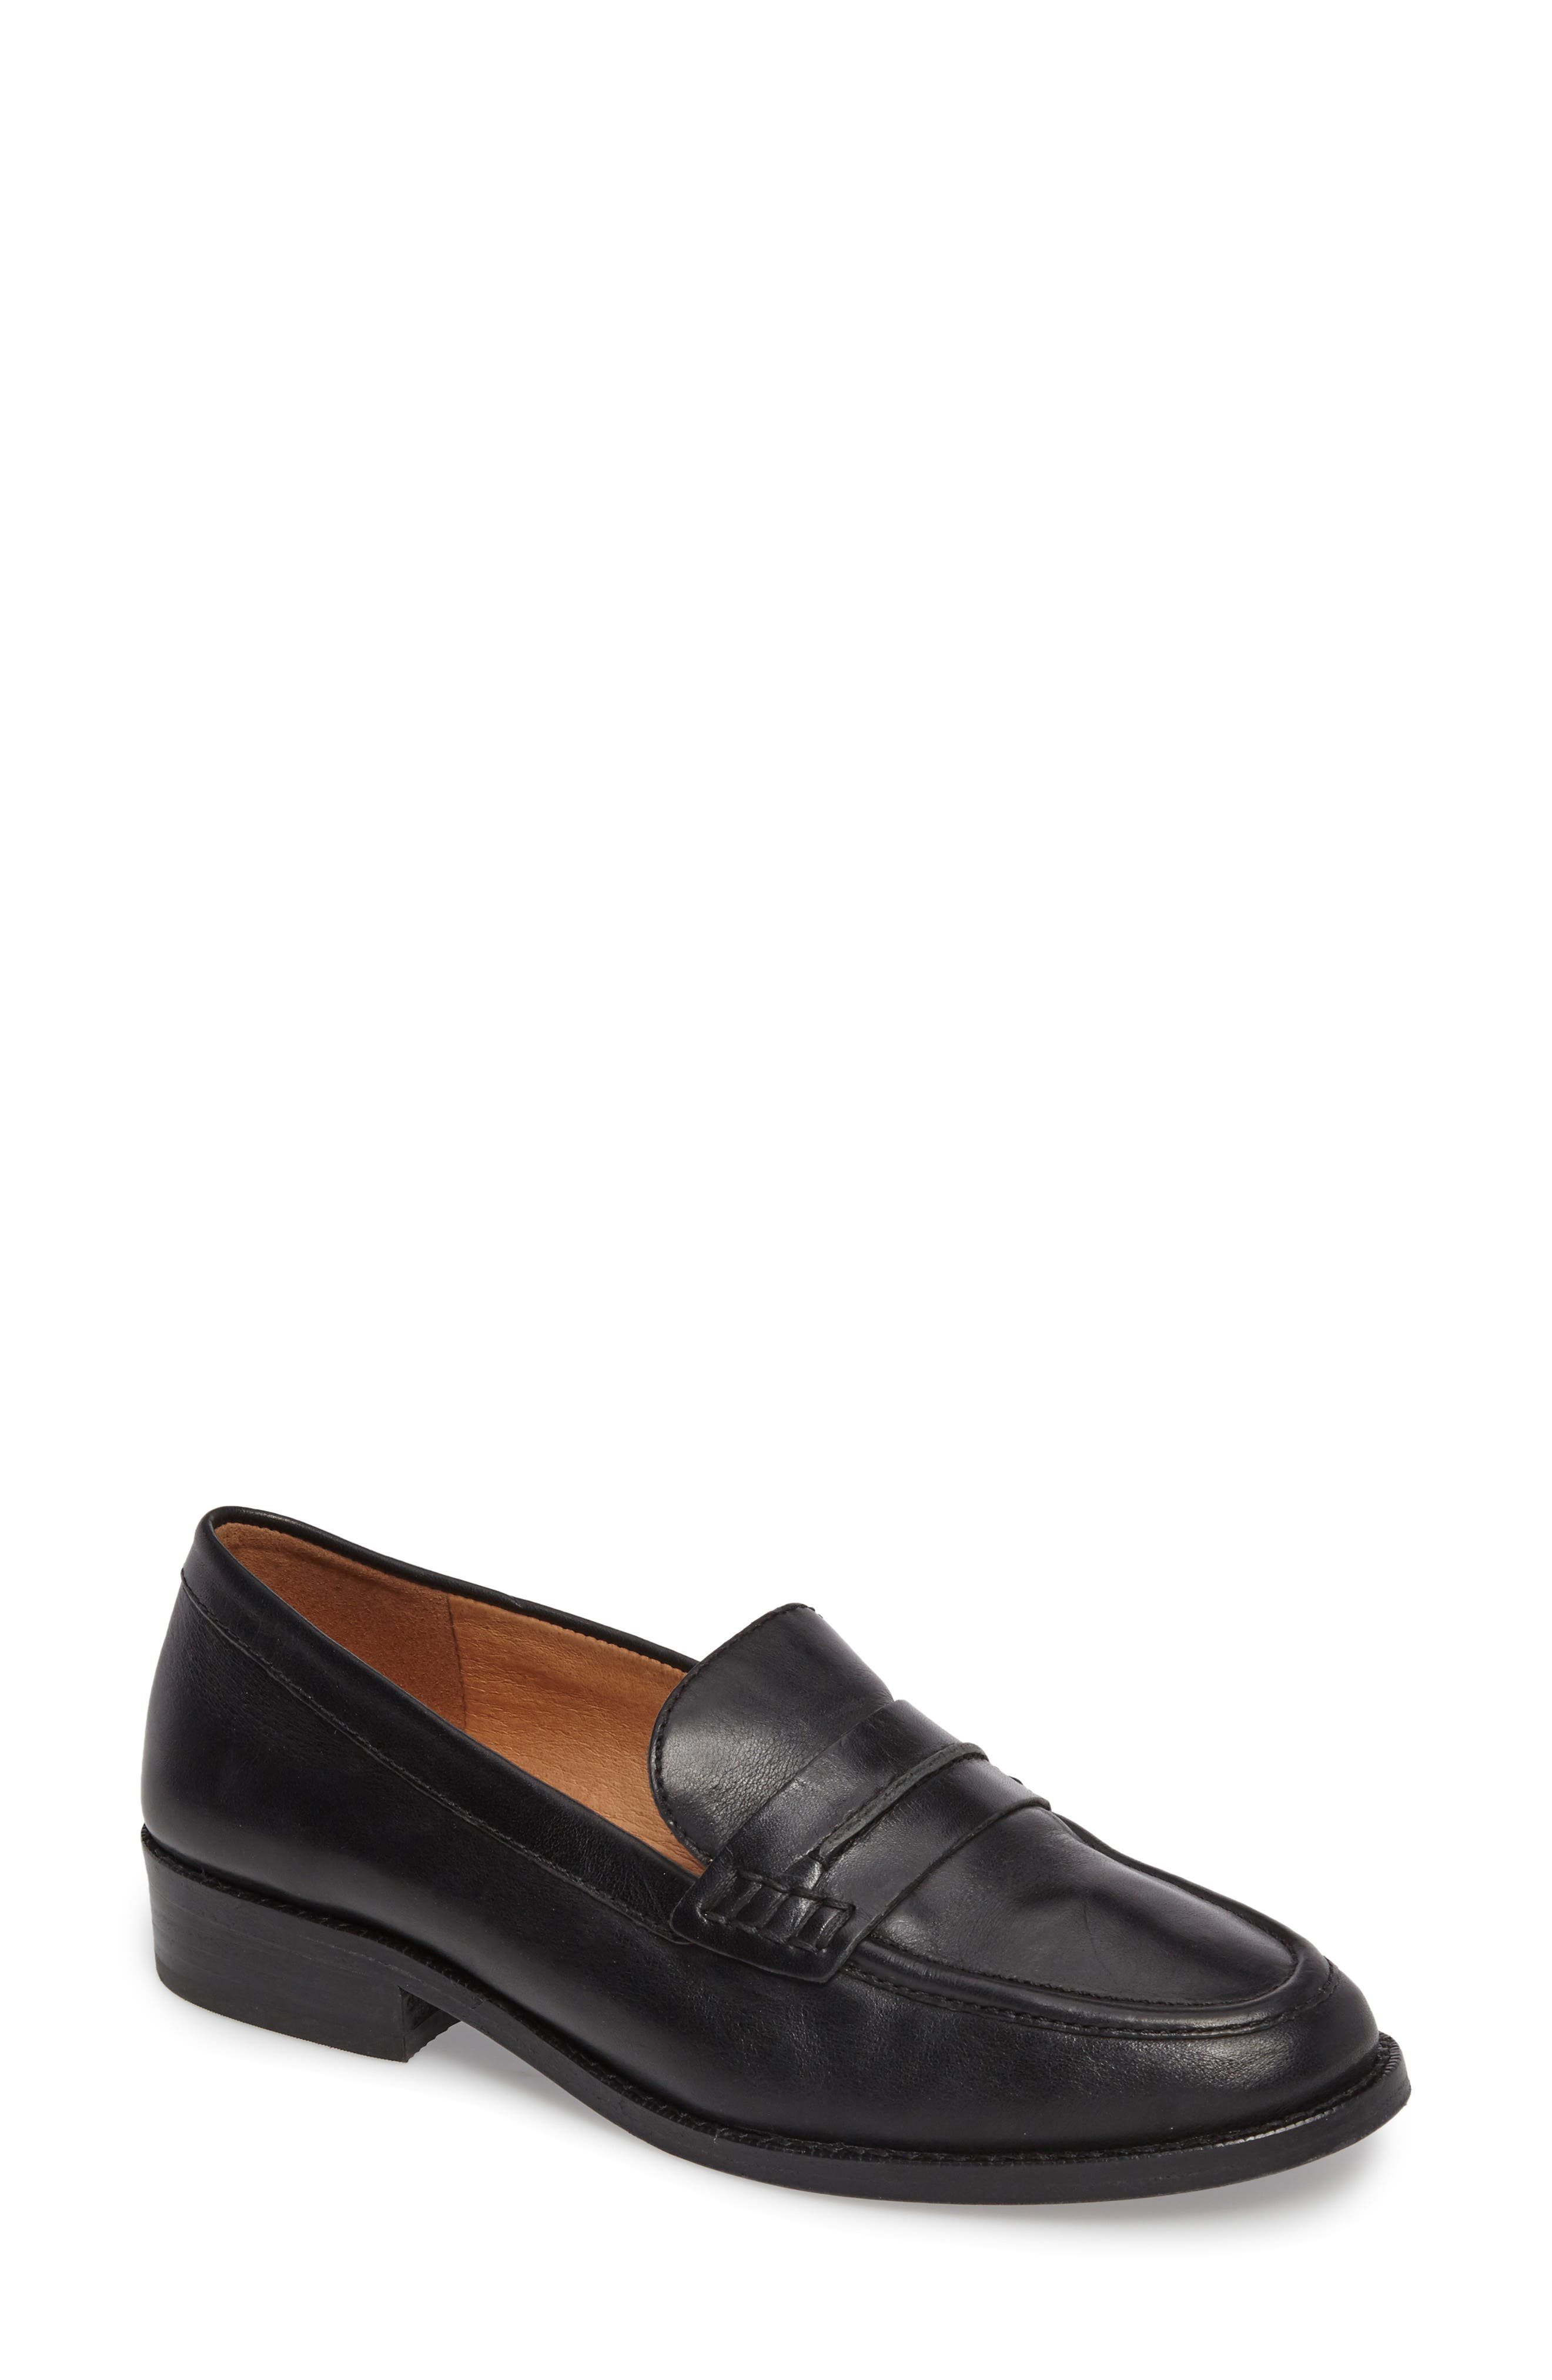 MADEWELL The Elinor Loafer, Main, color, 001